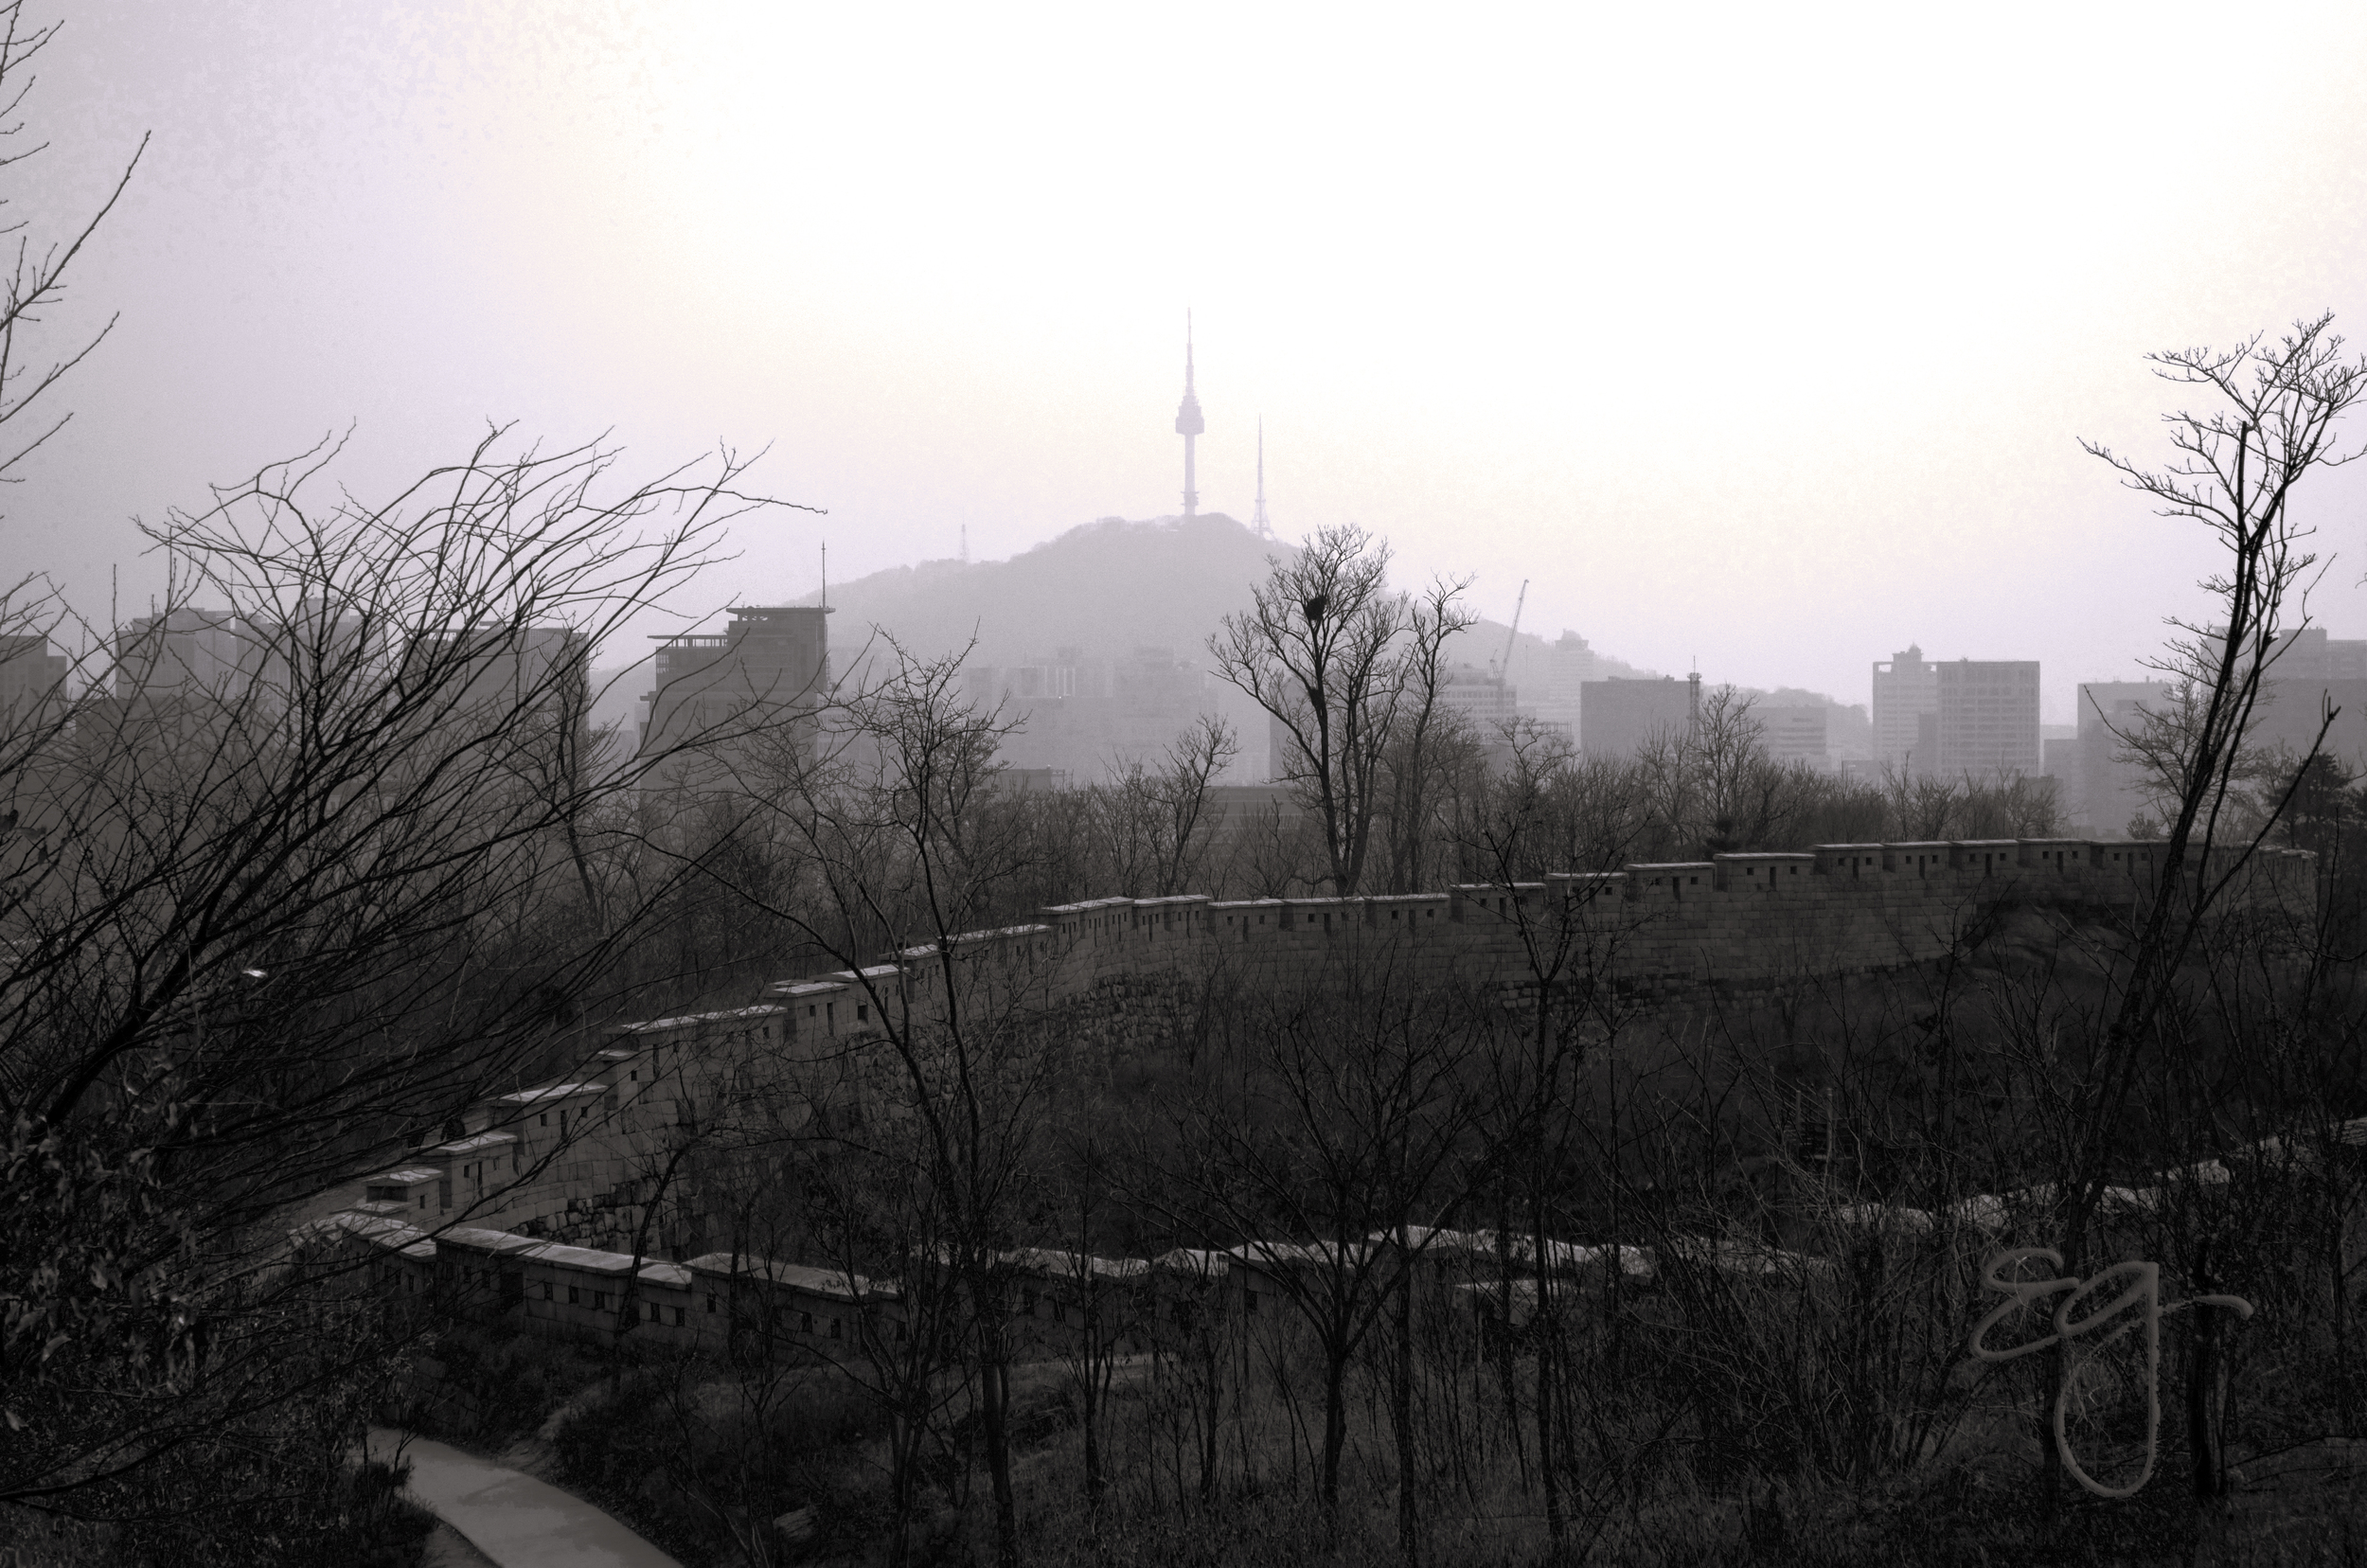 Seoul Fortress with Seoul Tower in the haze